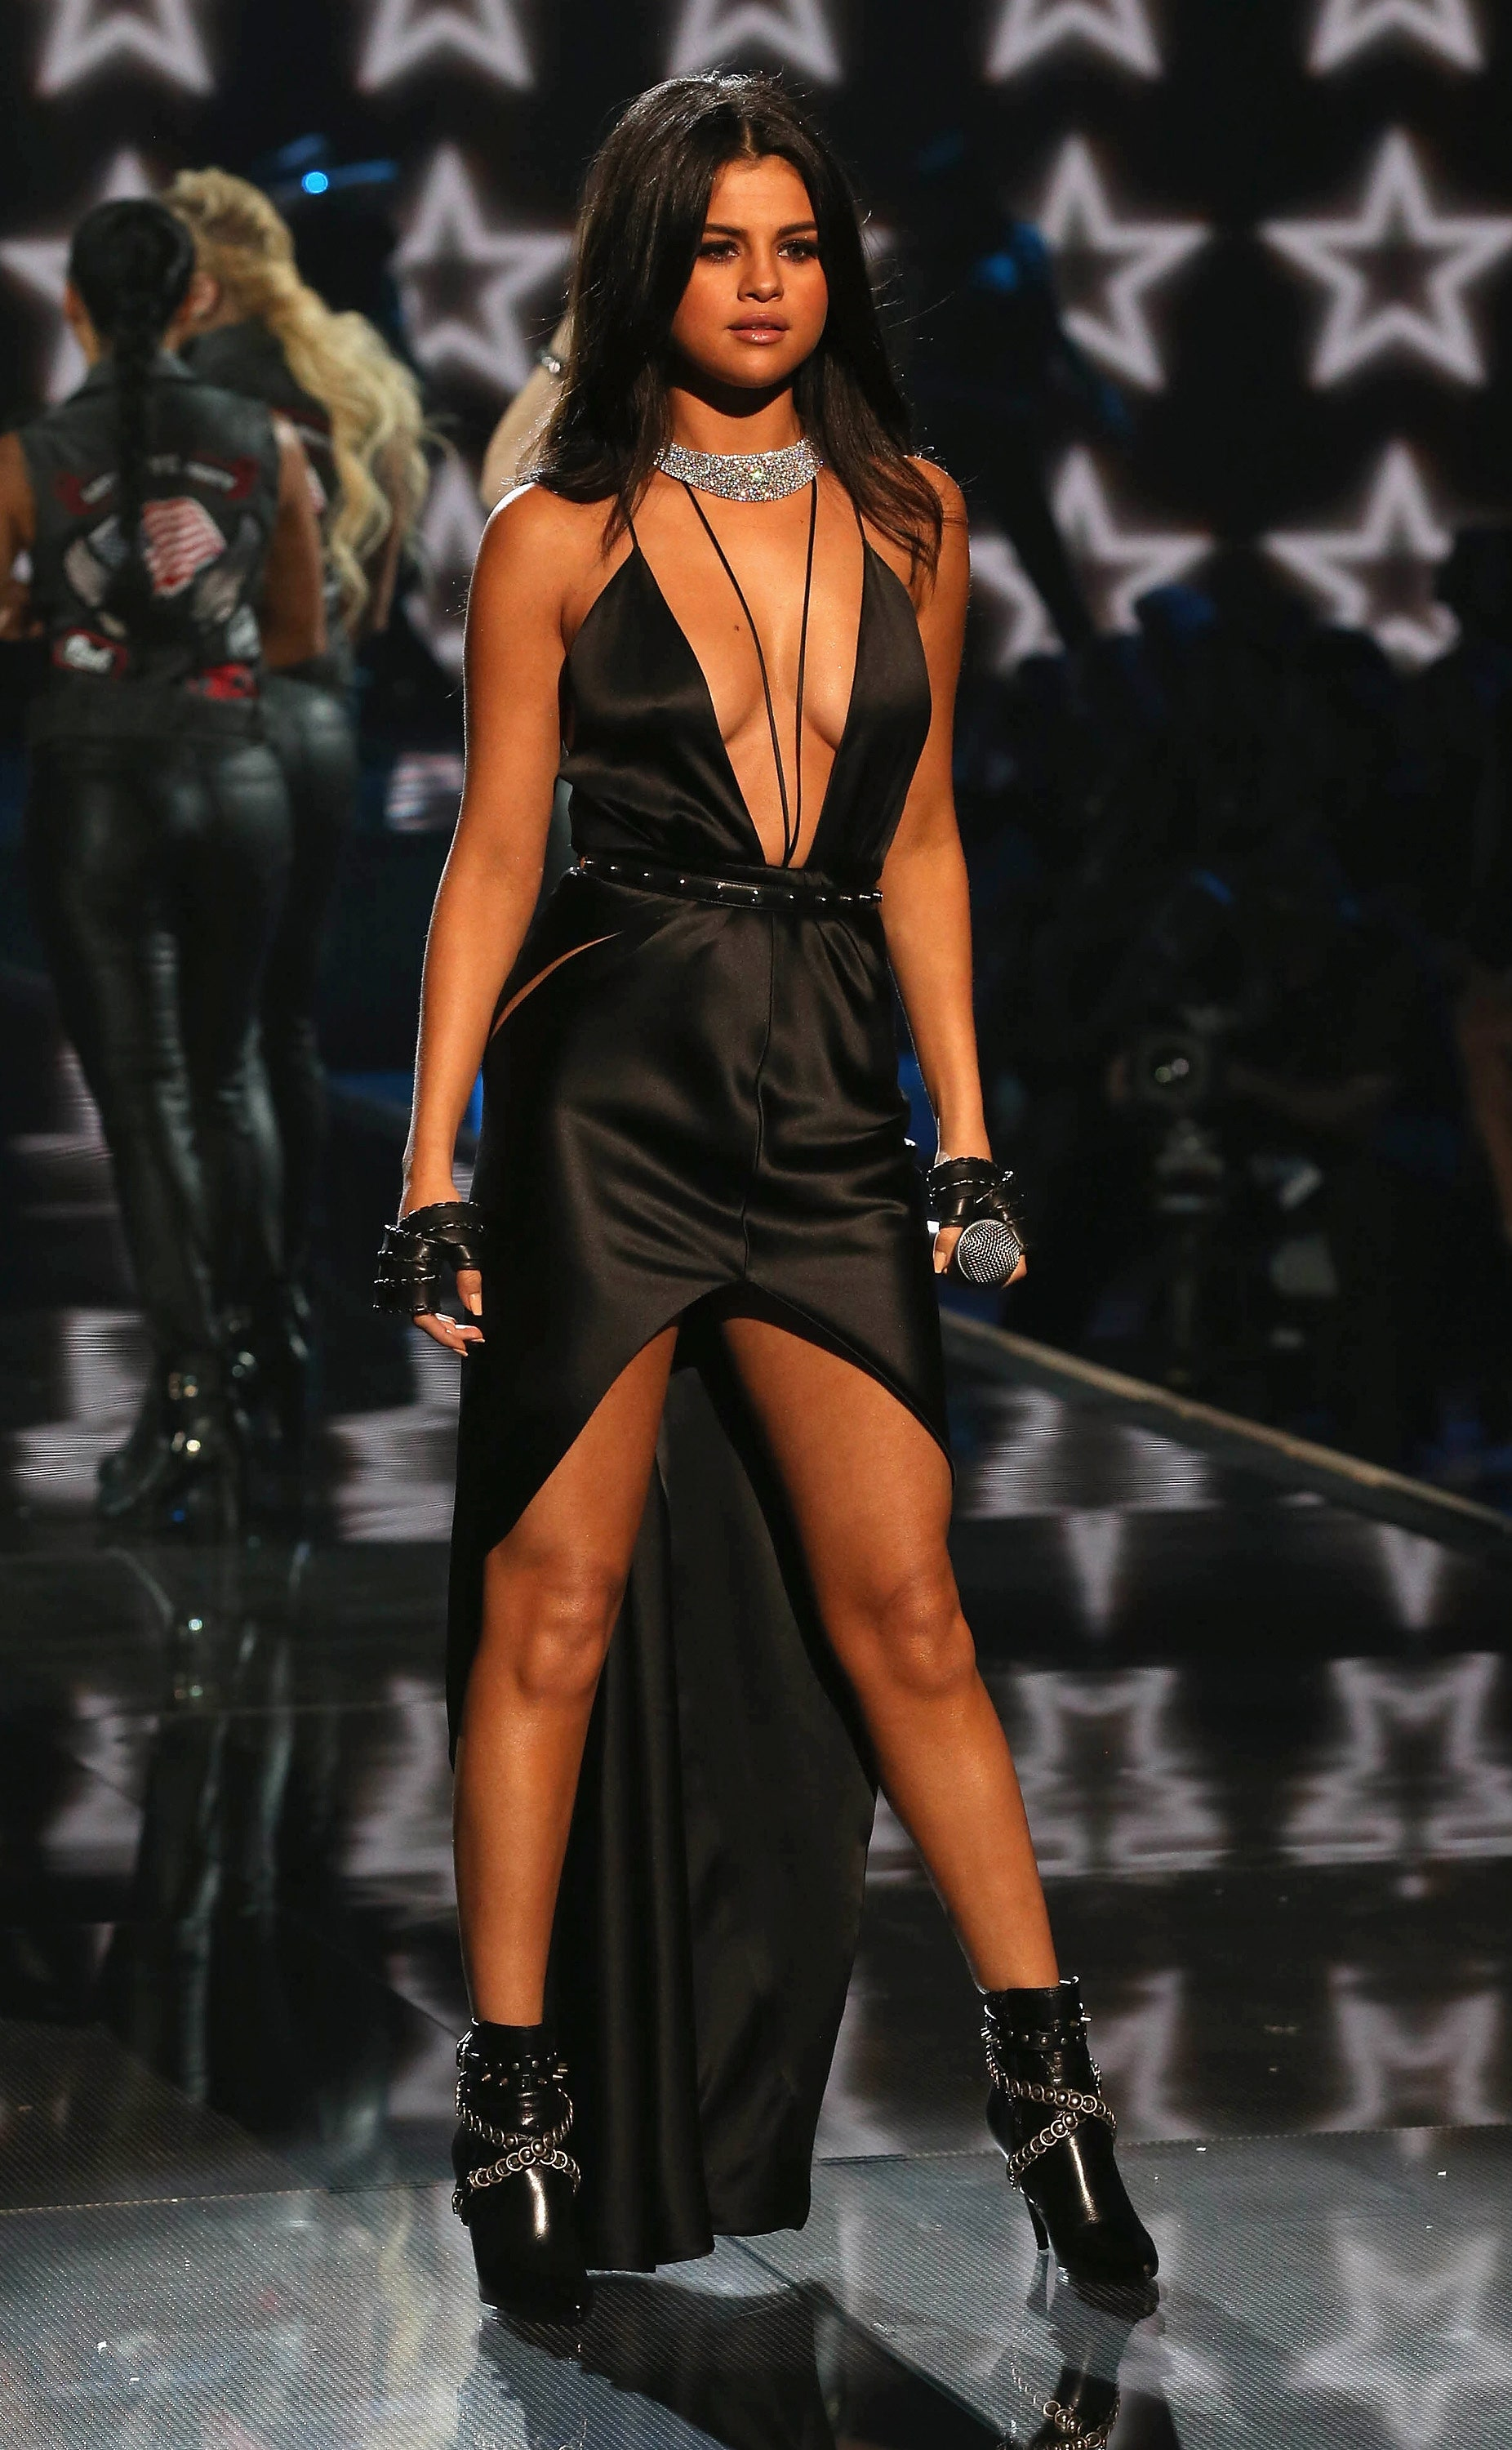 When Selena Gomez Wore Daring Outfits 4